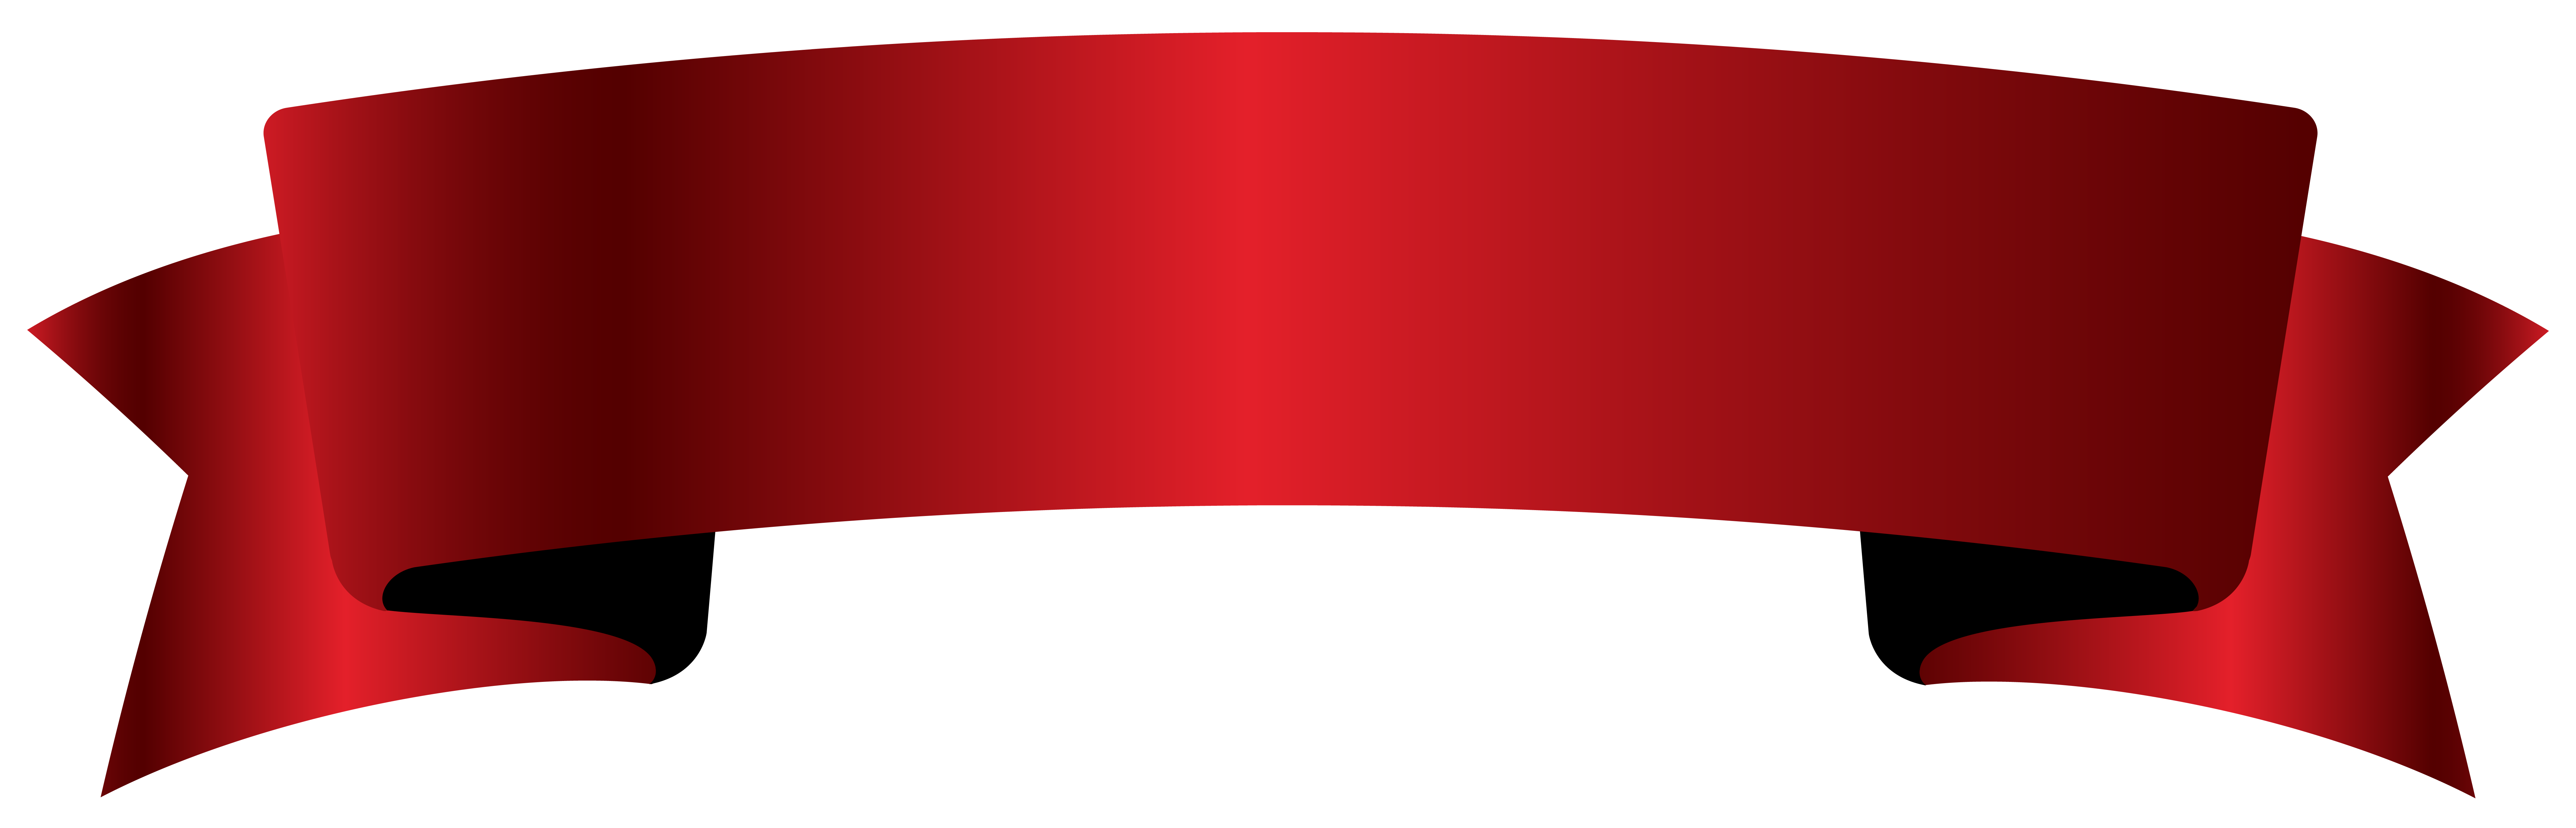 Red Banner PNG Clipart Picture Fita png, Faixa png